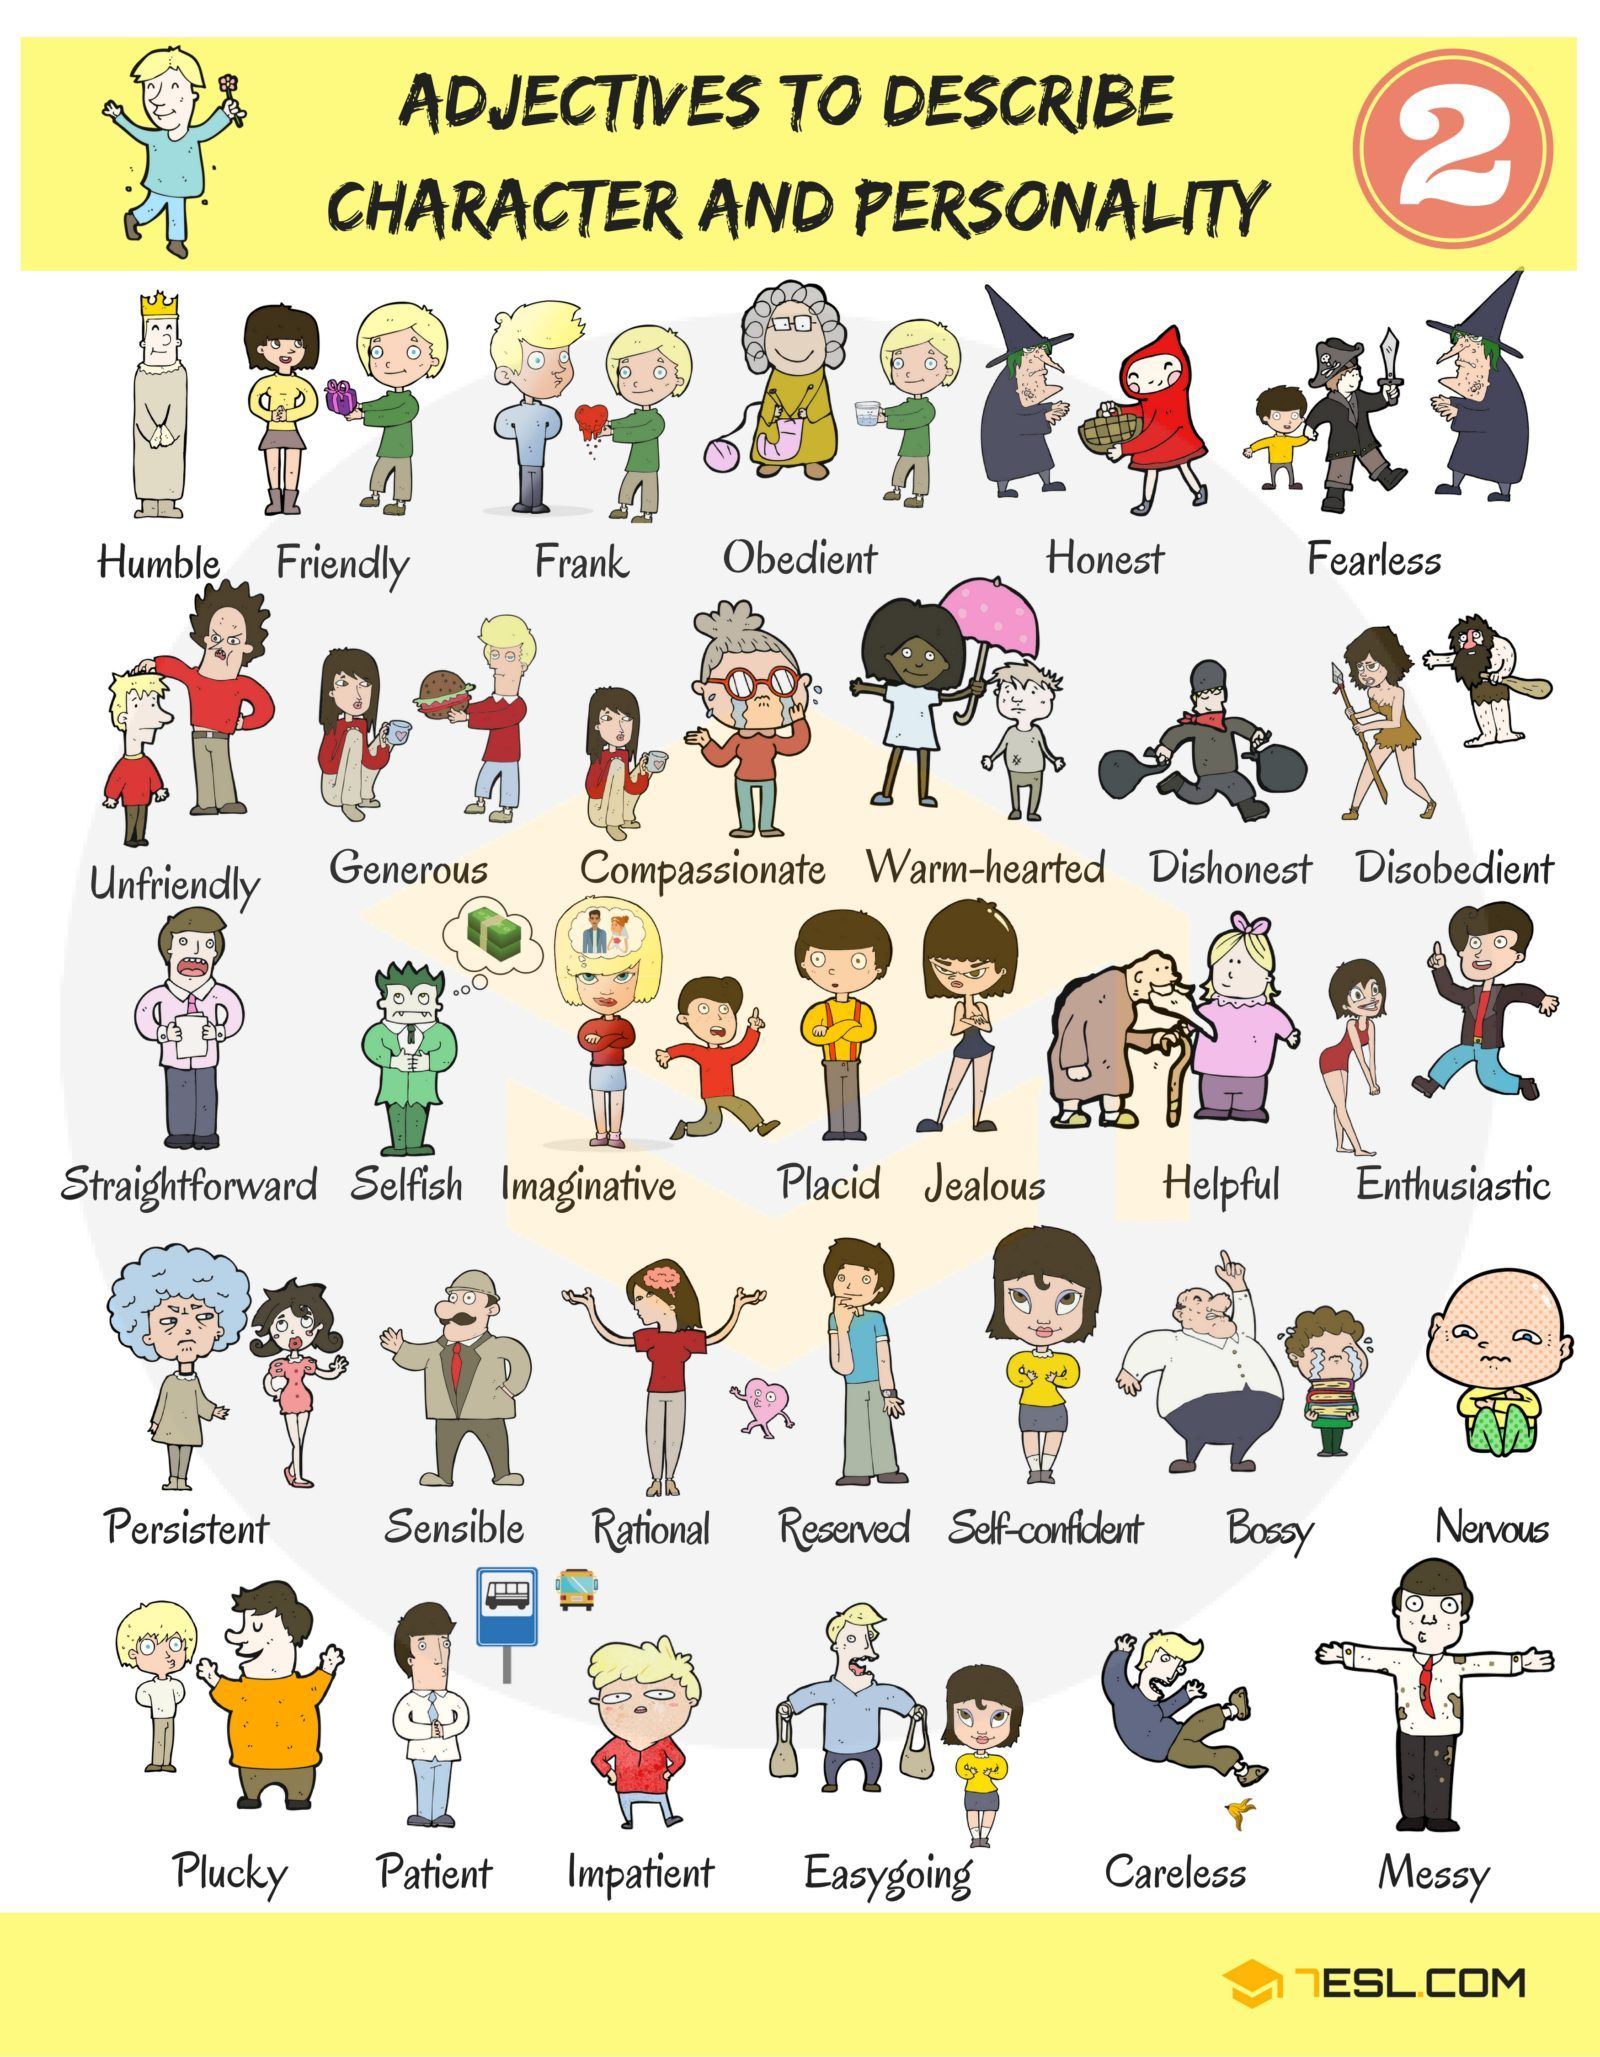 0011 English Adjectives for Describing Character and